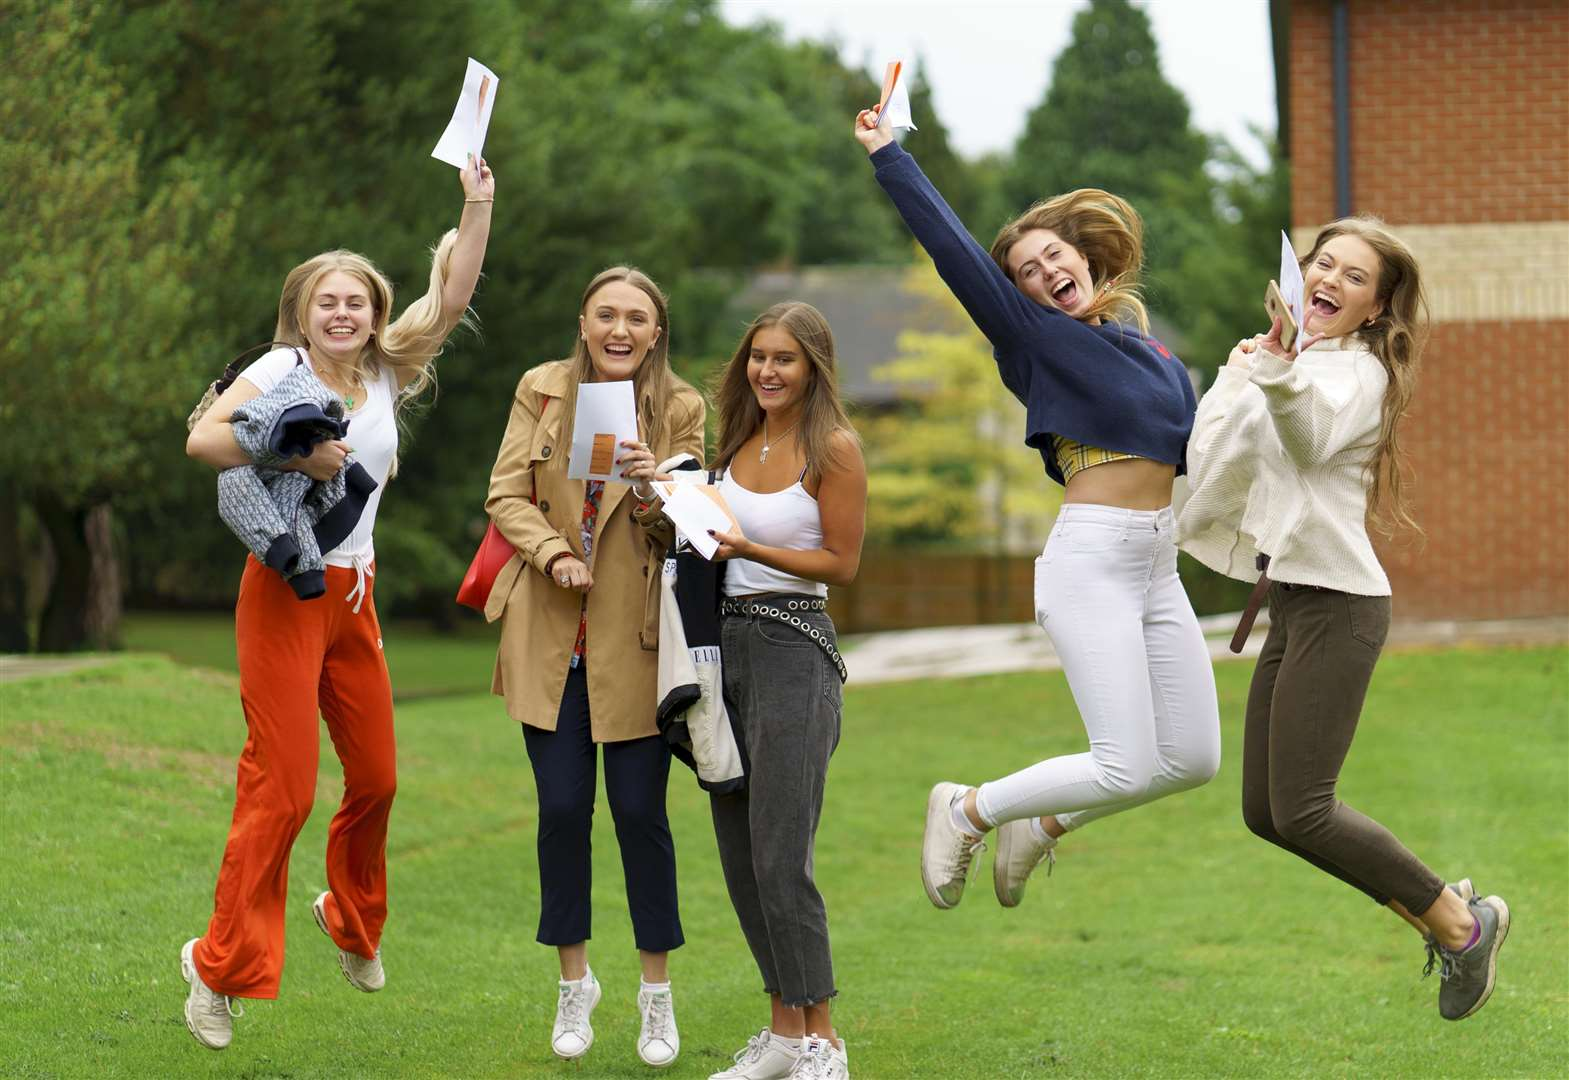 A-level delight at KGGS: 'Our students' results are richly deserved'